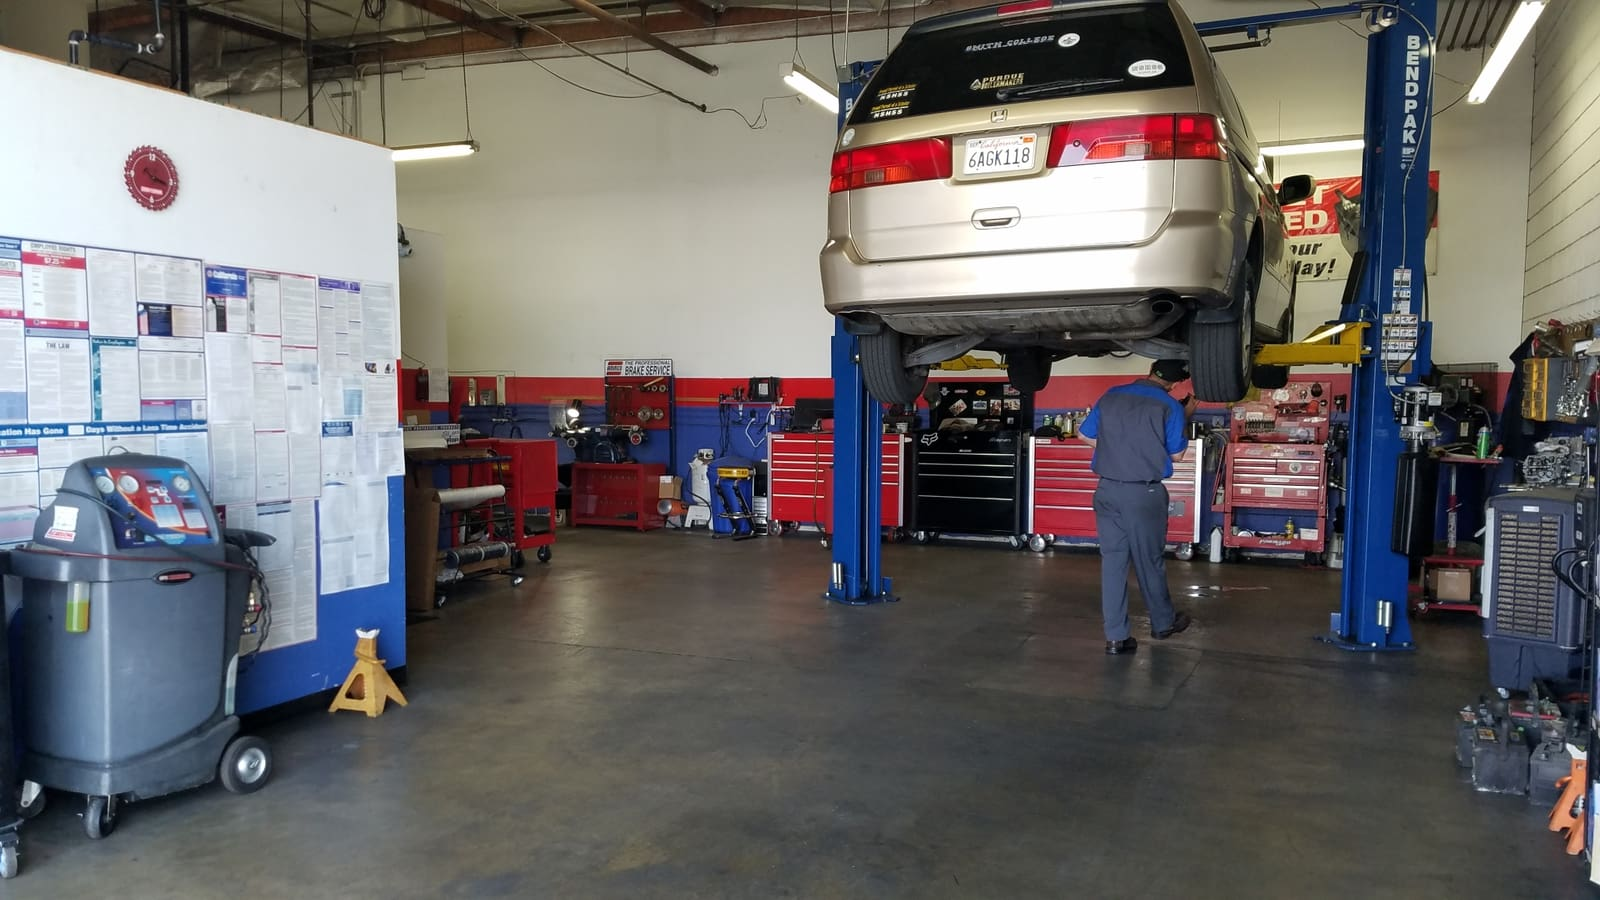 honda odyssey being serviced in alonso's auto repair